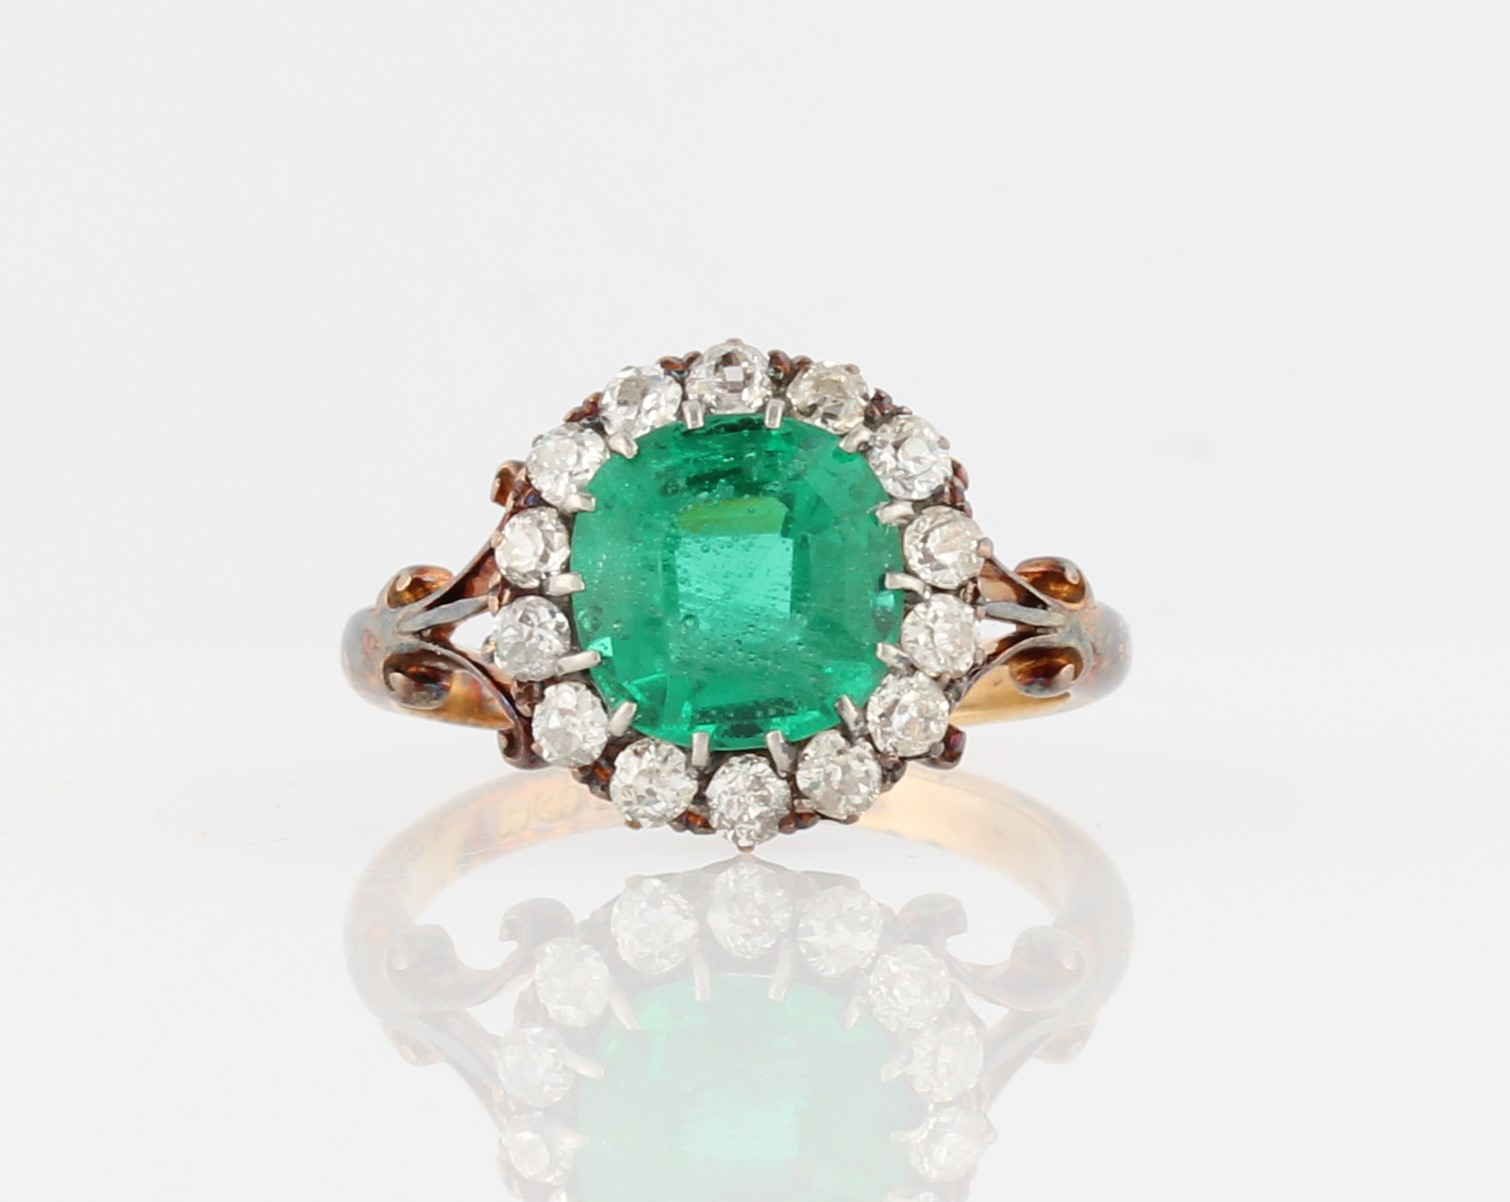 Lot 41 - An early 20th Century 18ct yellow gold green paste and diamond cluster ring, set with a cushion